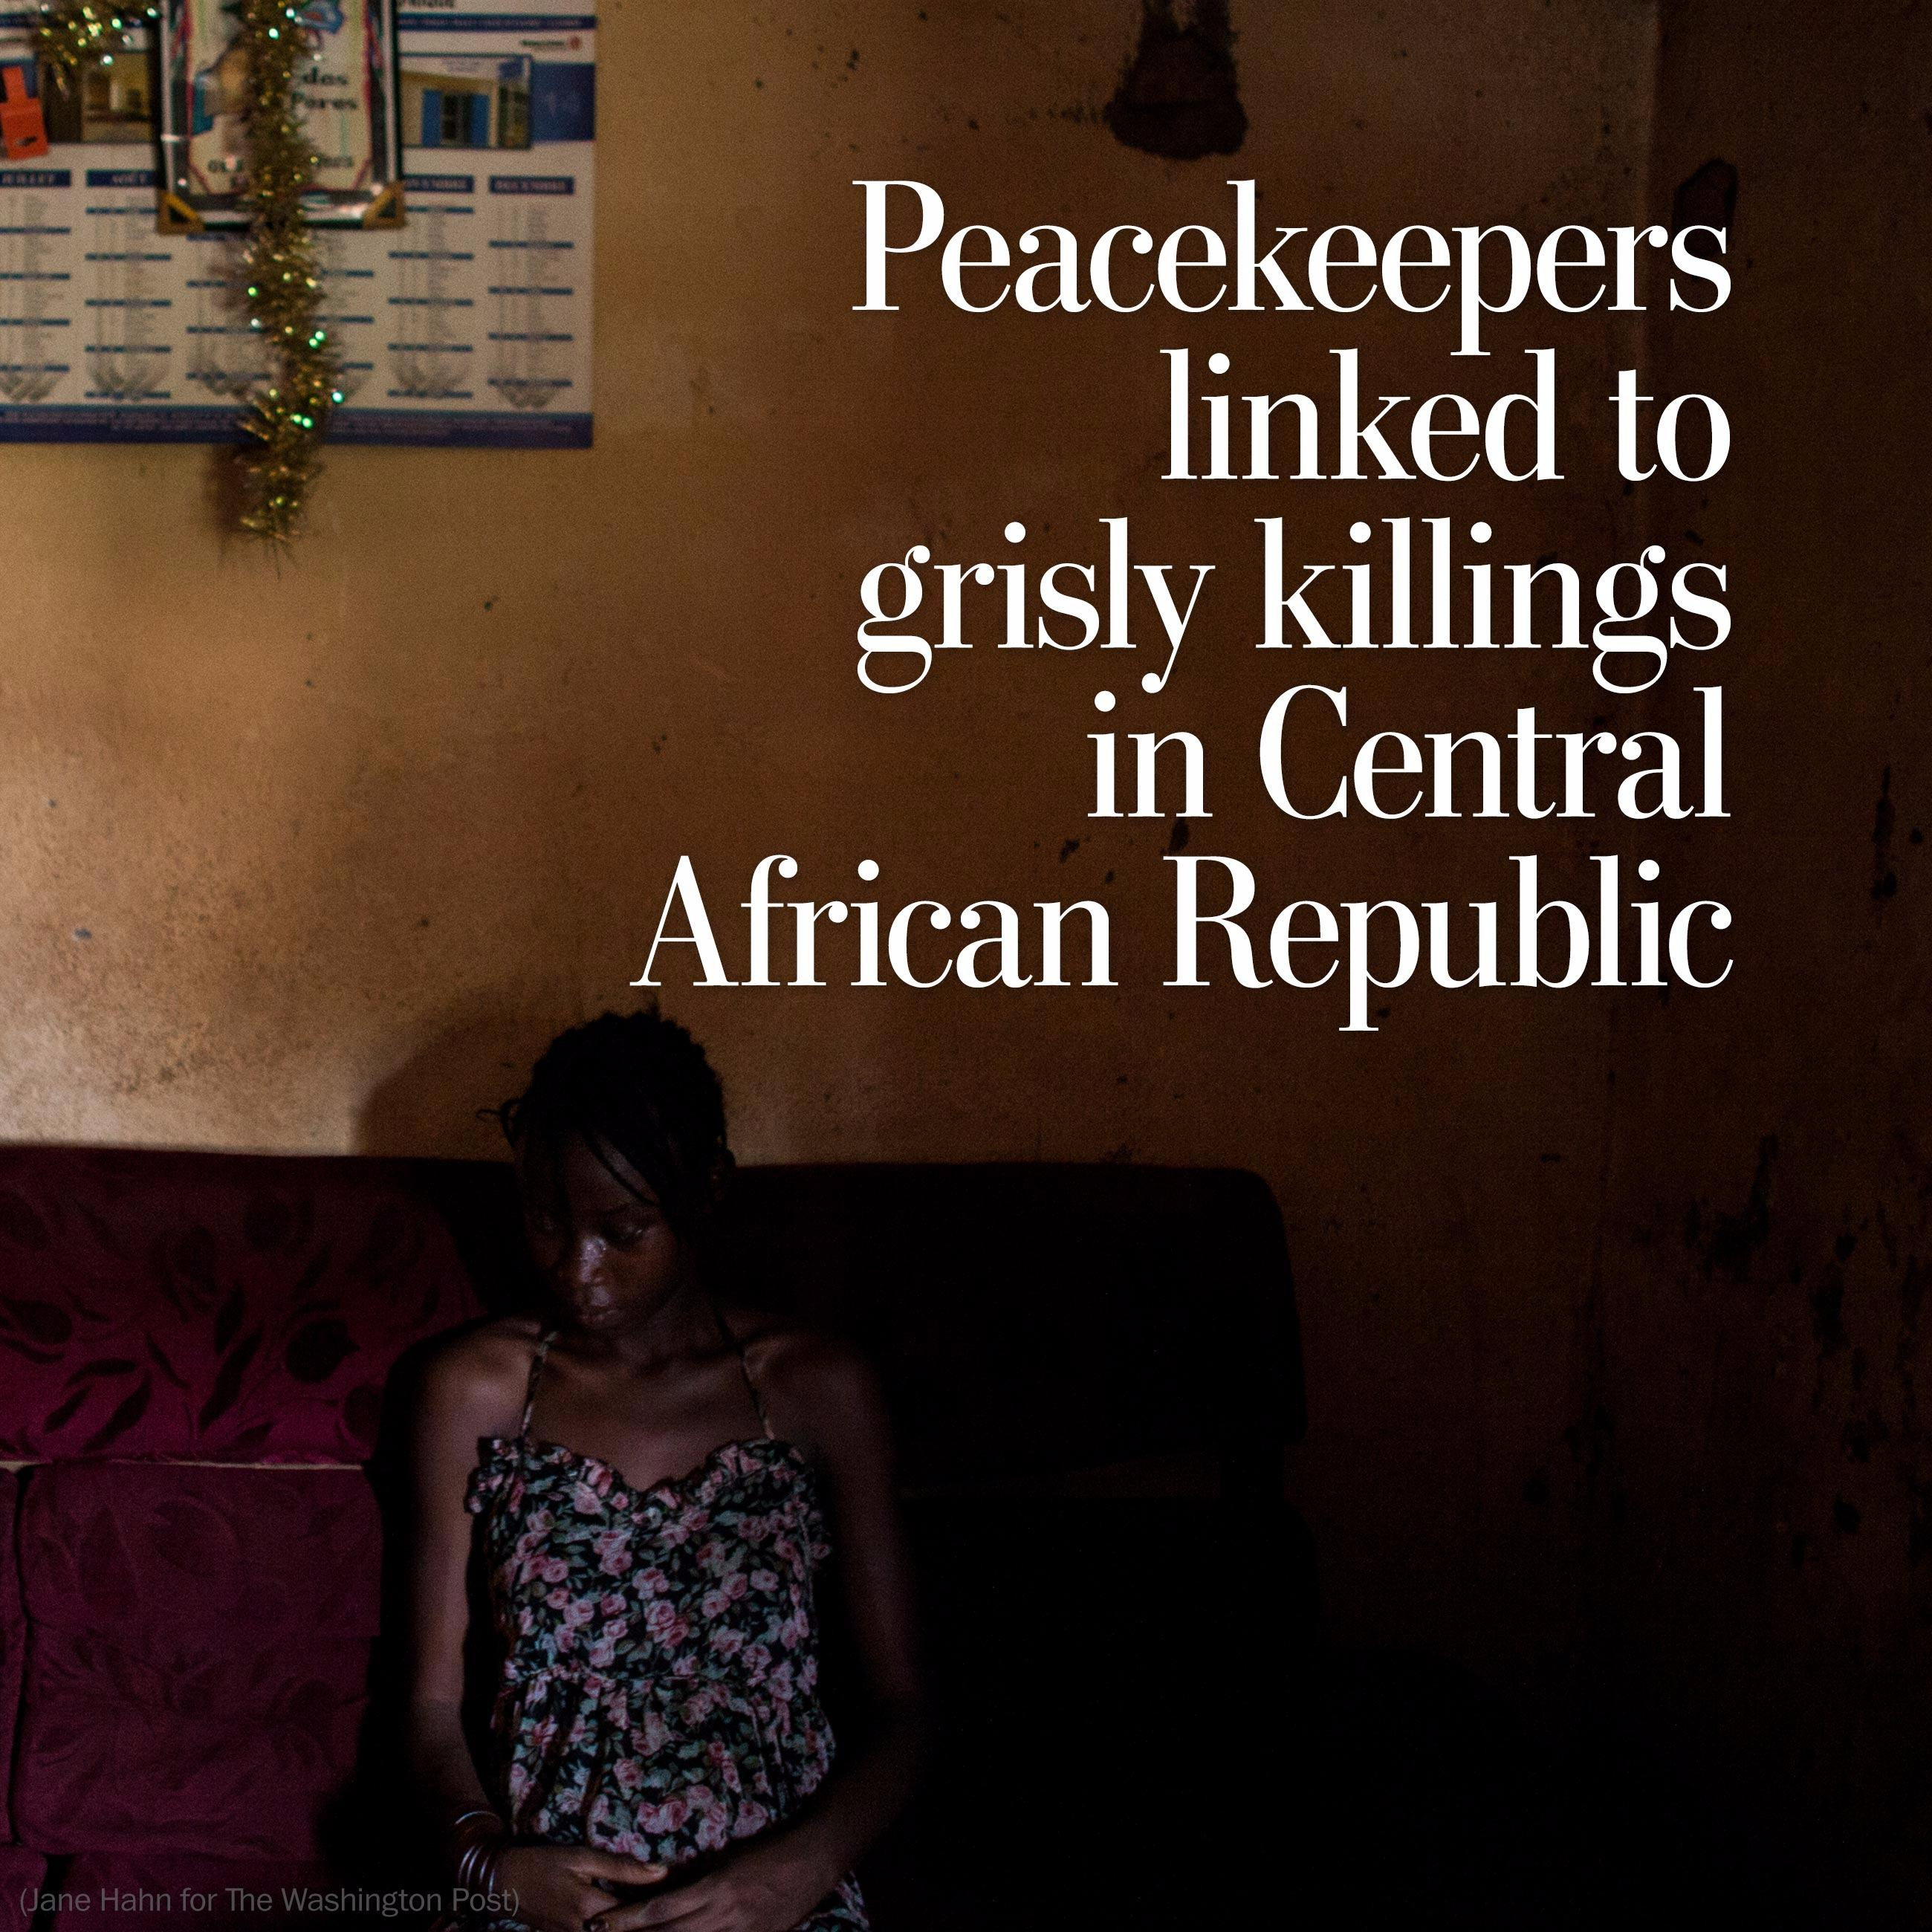 Peacekeepers linked to grisly murders in Central African Republic